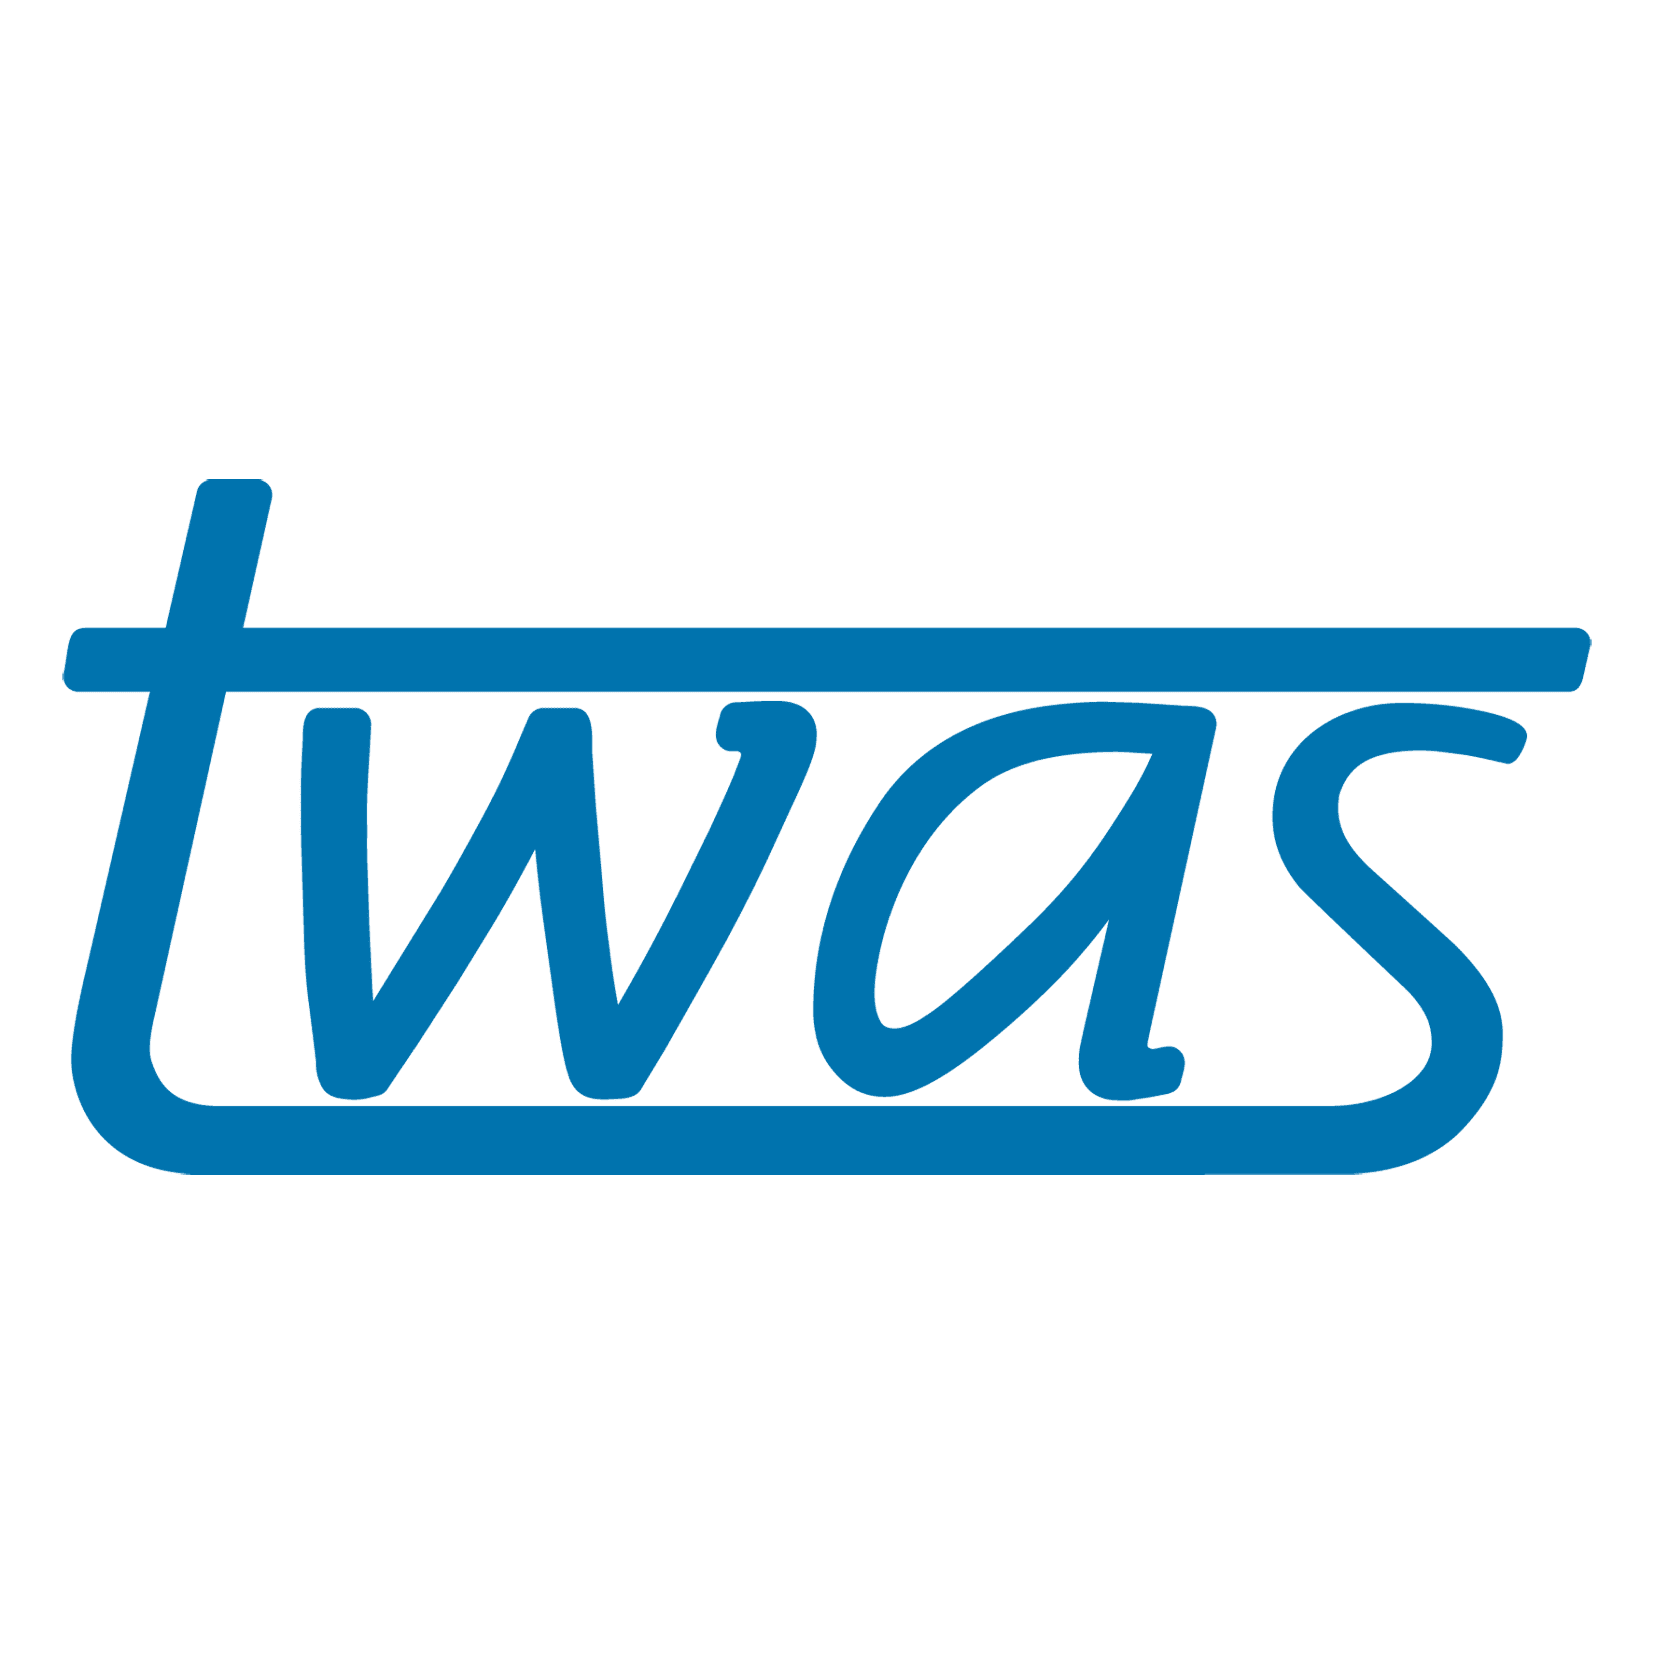 TWAS-DBT Postgraduate Fellowship Programme 2018 for Researchers from developing countries (Funded)